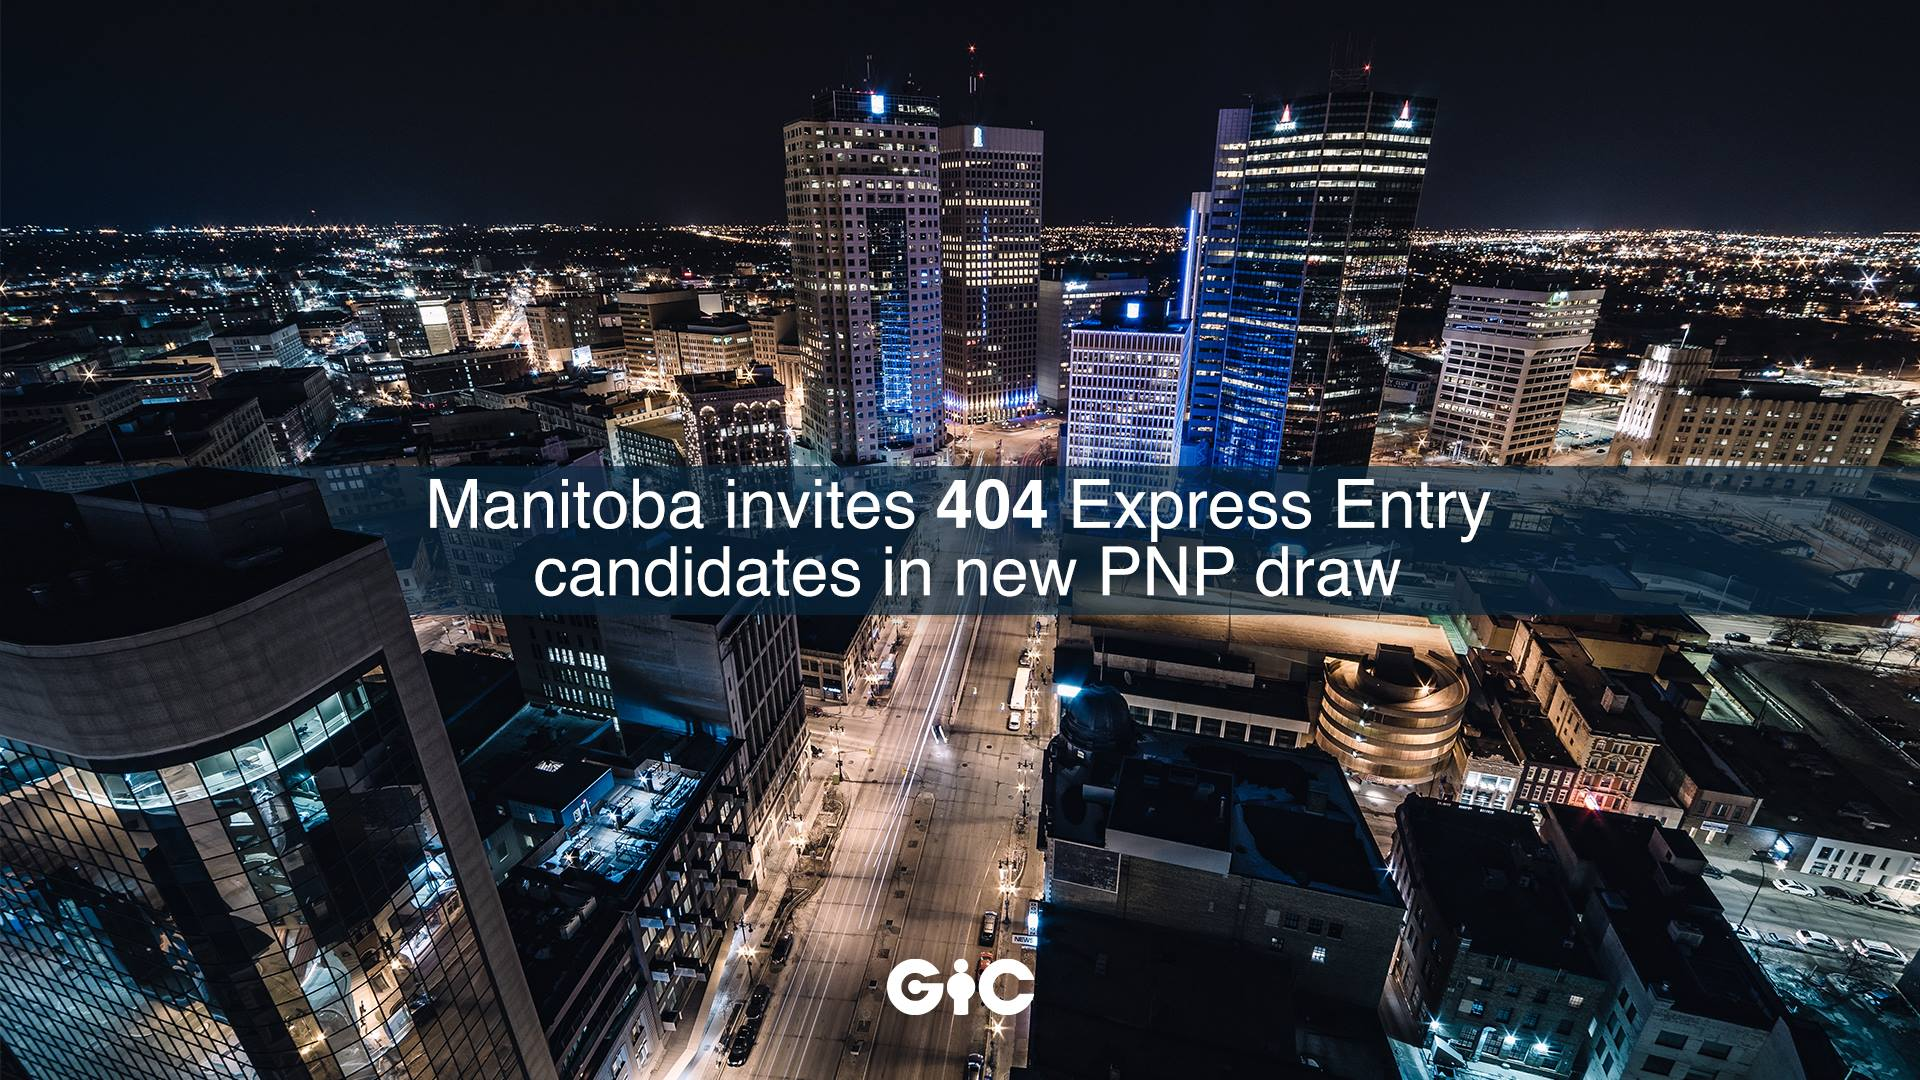 Manitoba invites 404 Express Entry candidates in new PNP draw